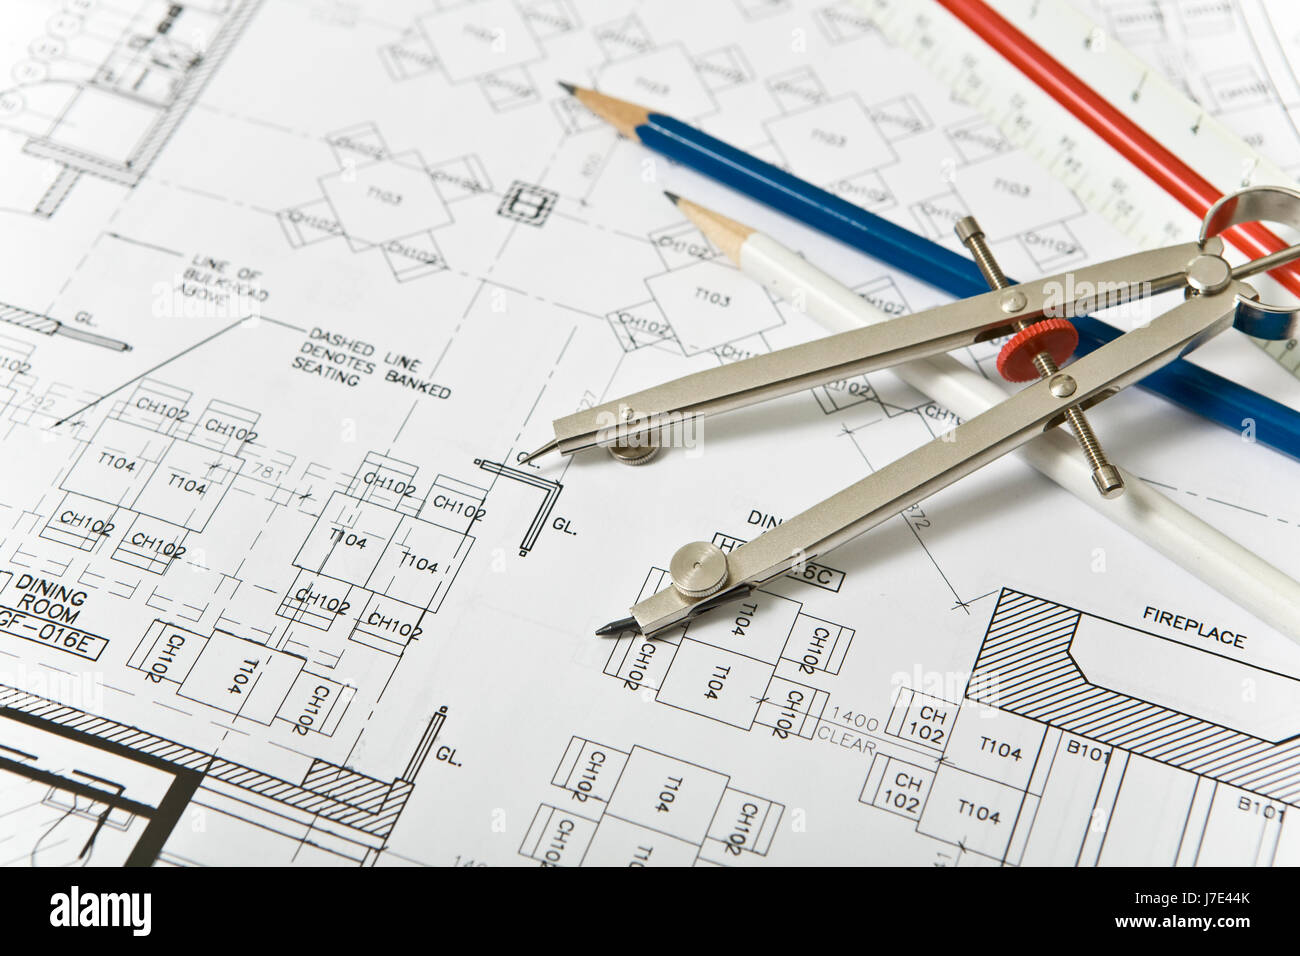 Architectural blueprint background stock photo 142296131 alamy architectural blueprint background malvernweather Images